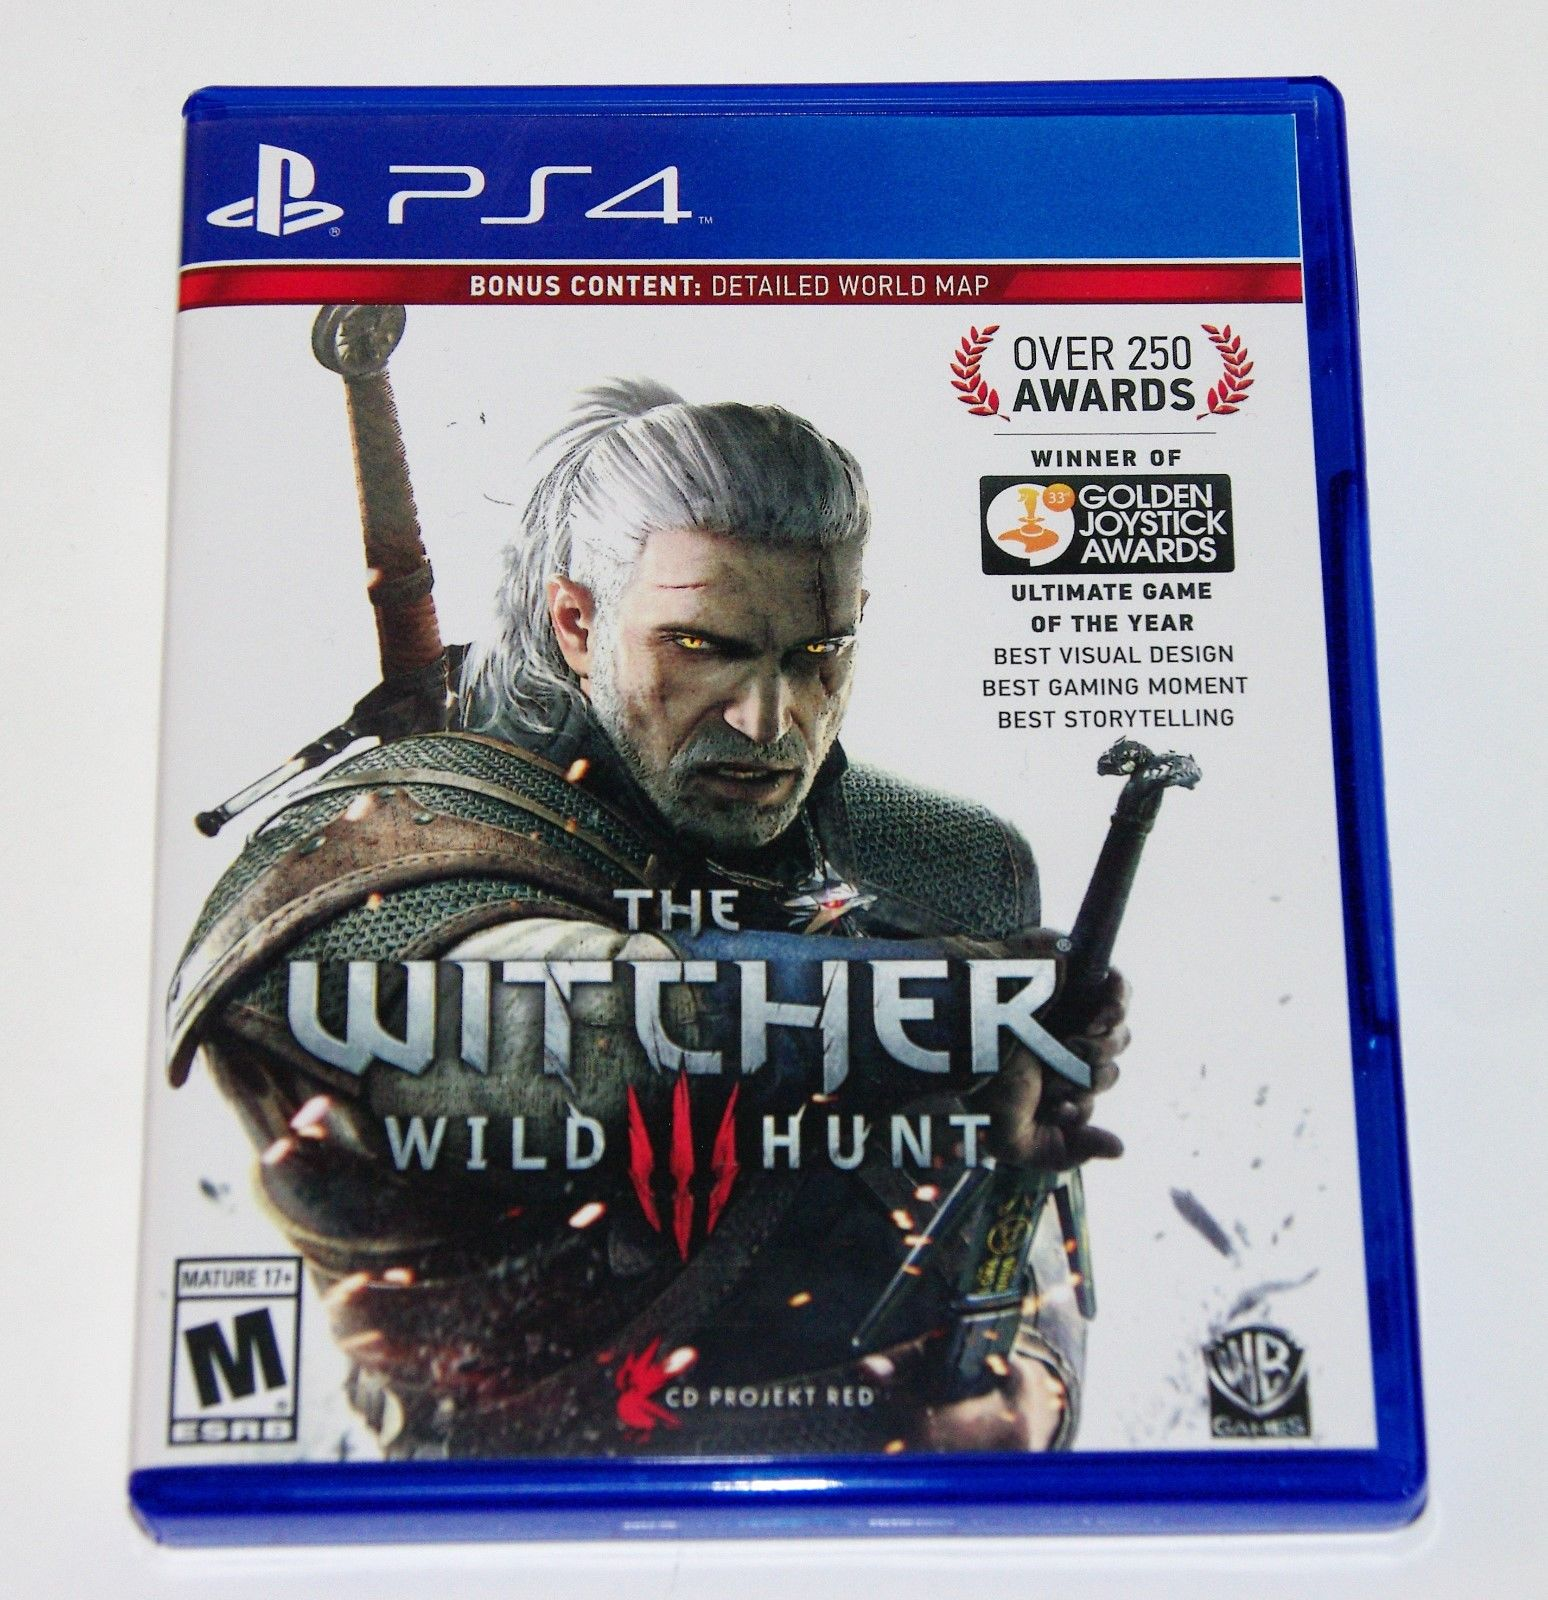 Replacement Case No Game The Witcher 3 Wild Hunt Playstation 4 Ps4 Xbox One Mx Gp 2 Cover English 749 Box Ebay Electronics